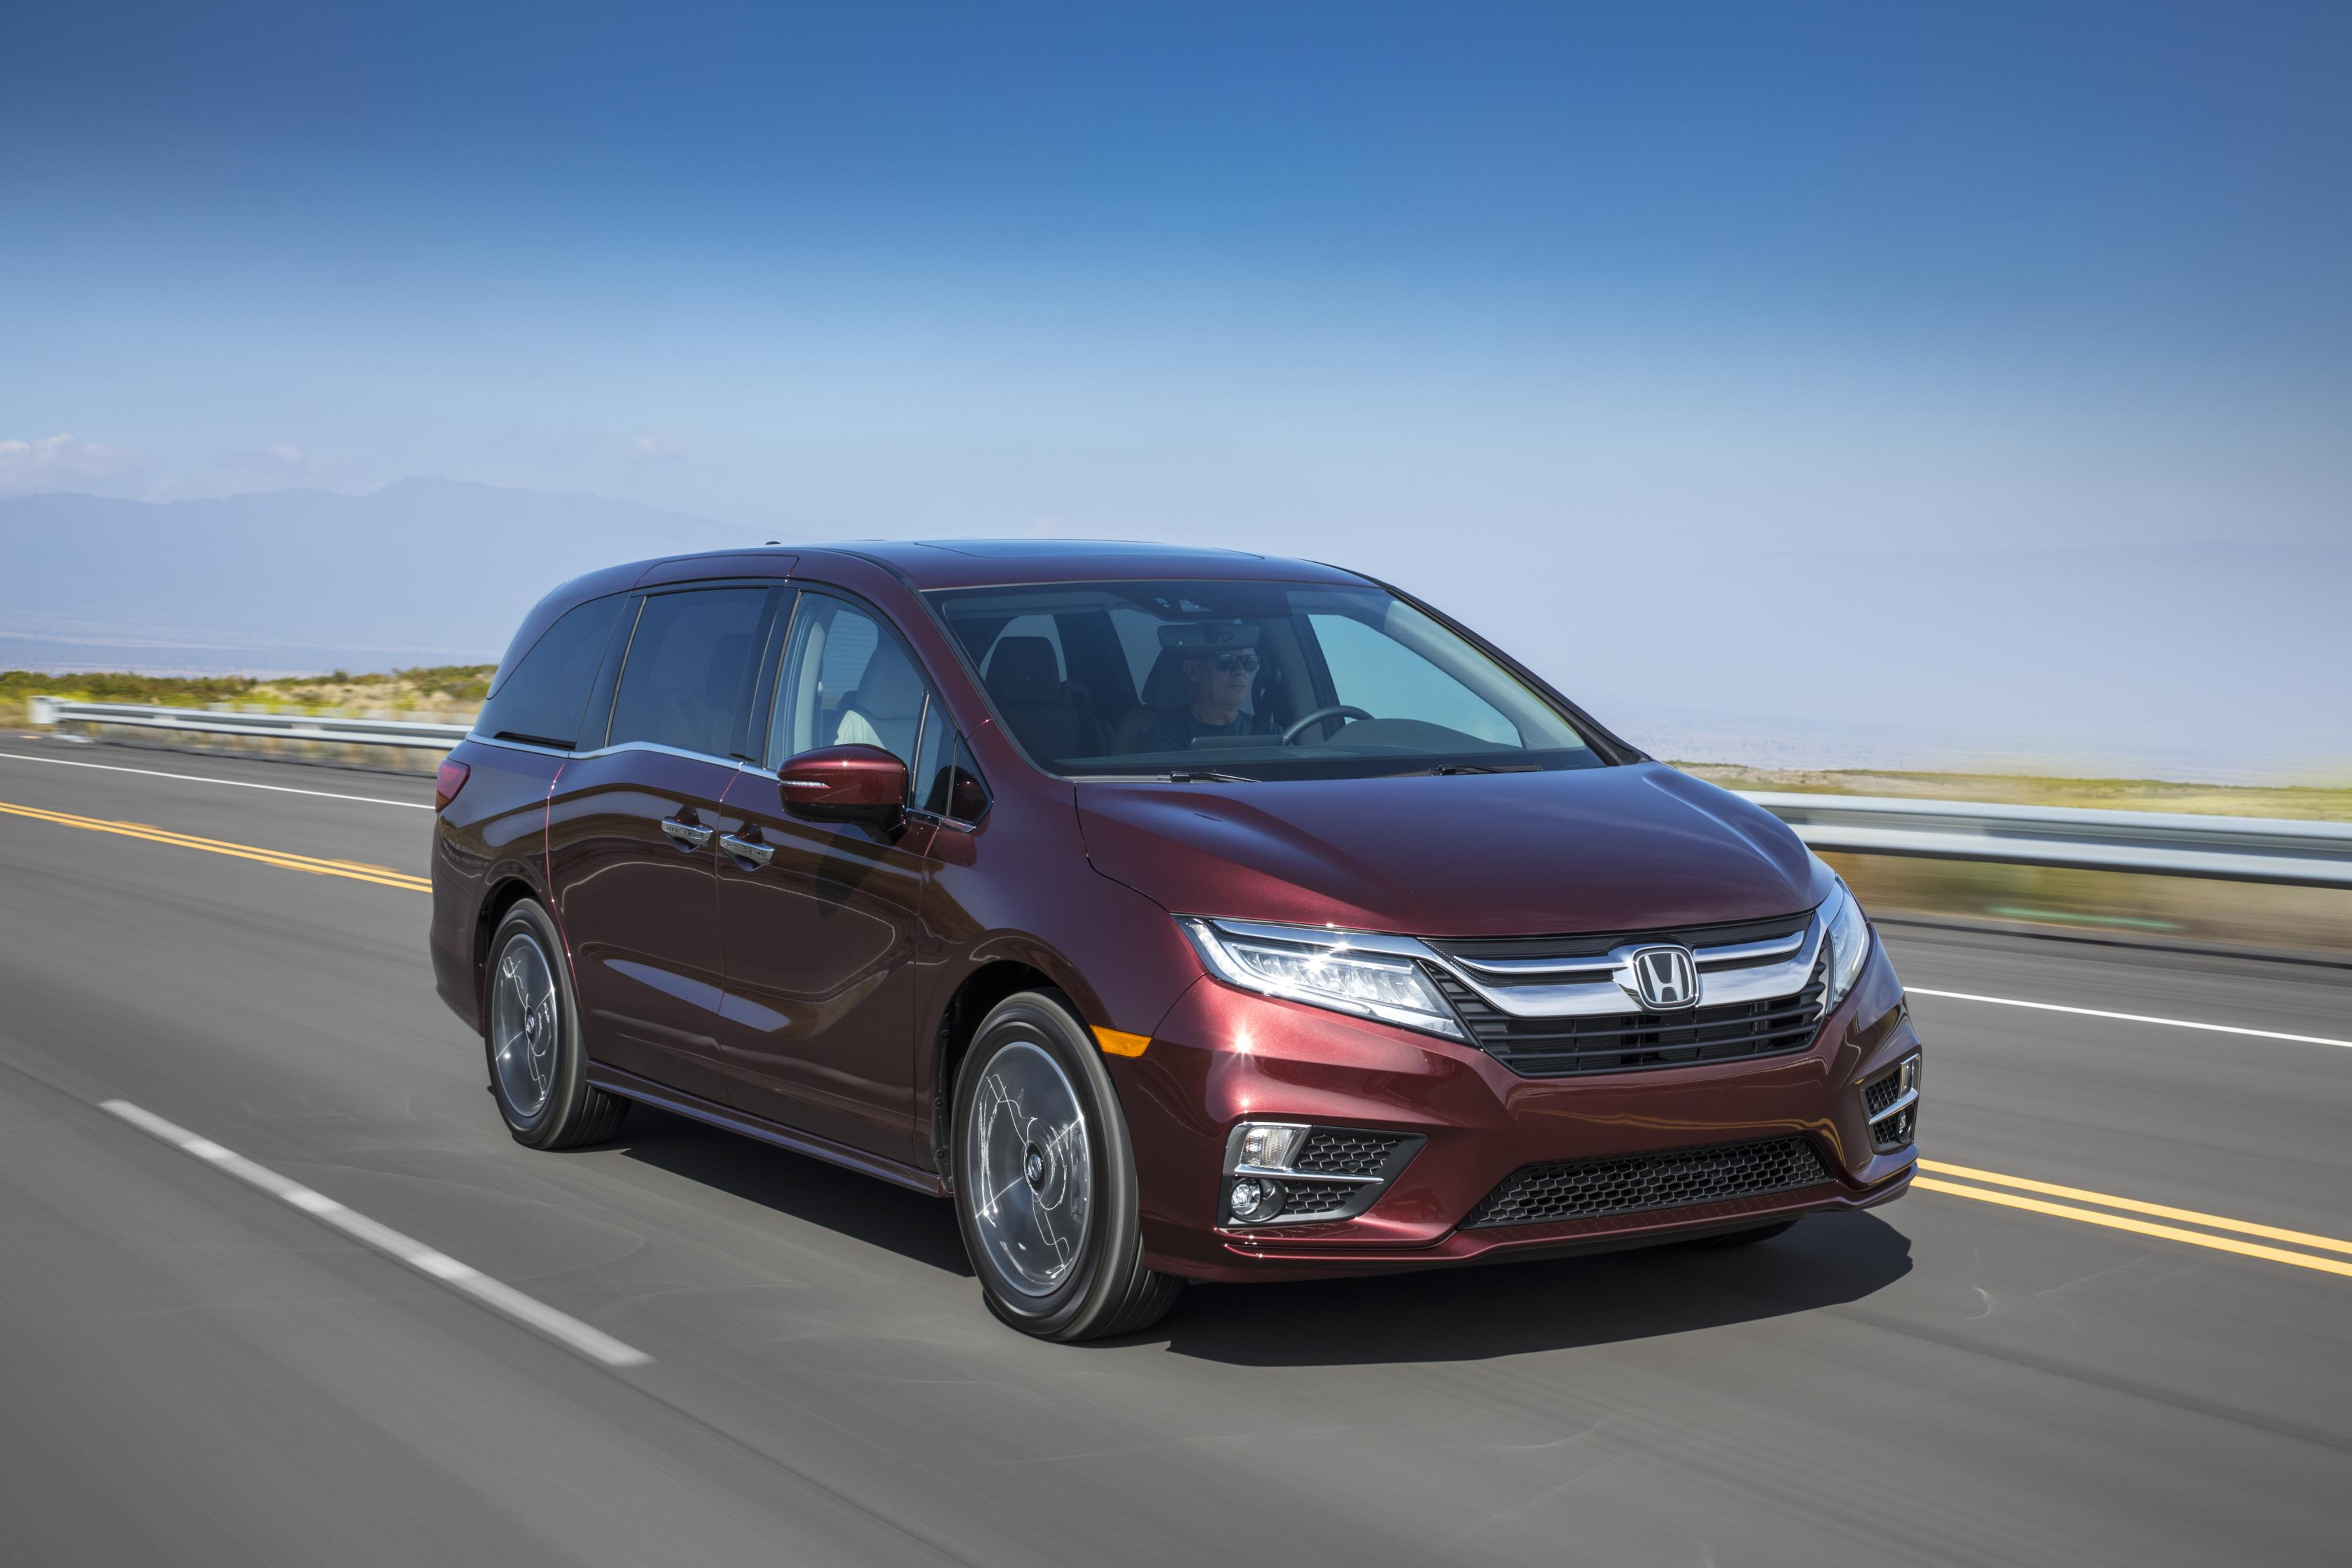 Honda Odyssey, one of Honda's top selling vehicles in calendar year 2017